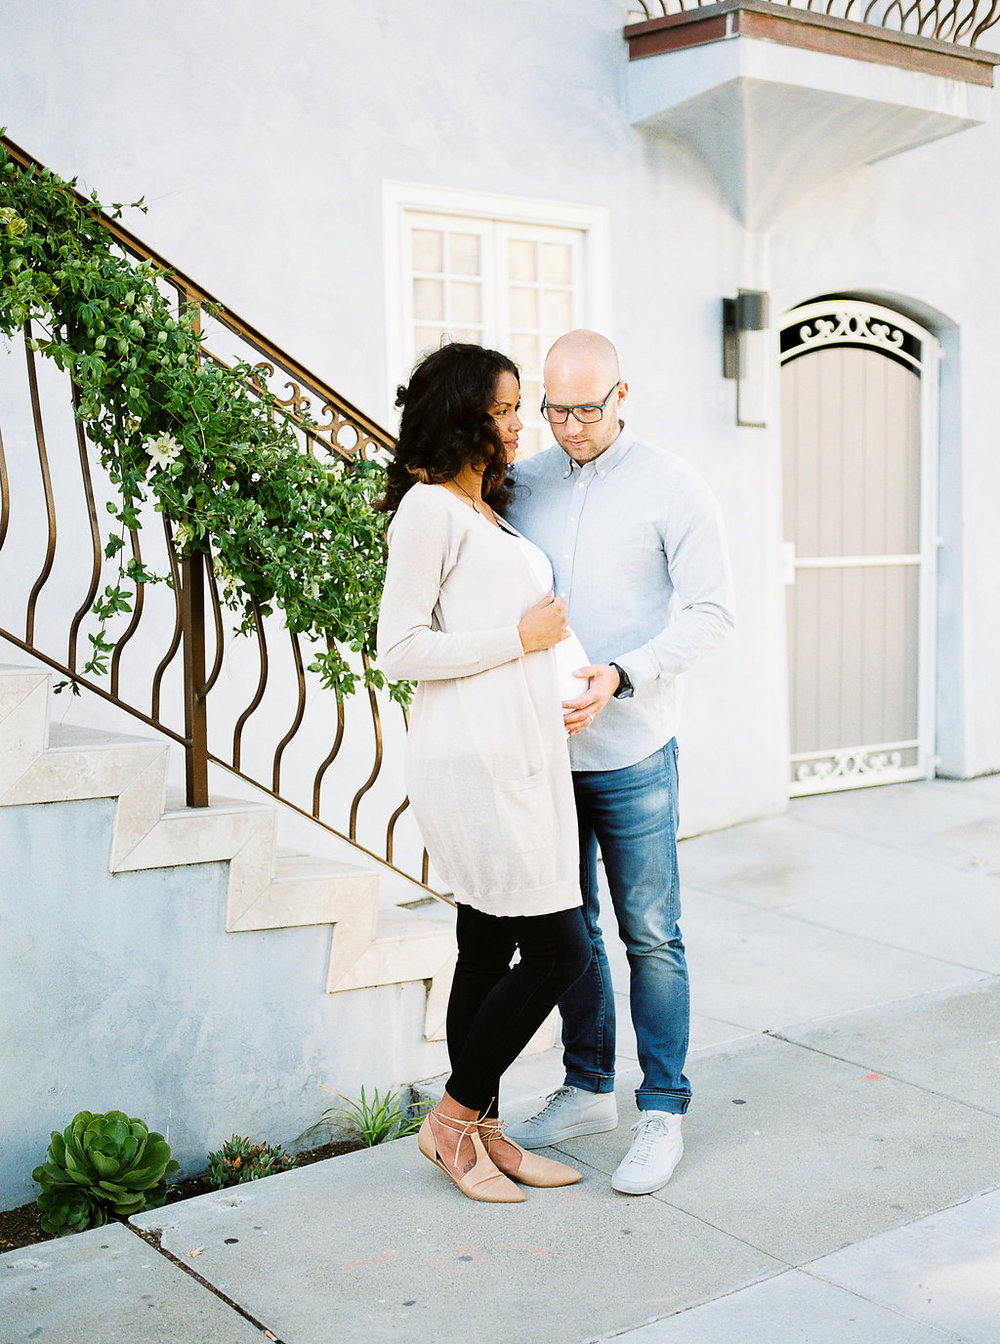 San Fransisco wedding photographer Kibogo Photographer | maternity photos in SF 15.JPG